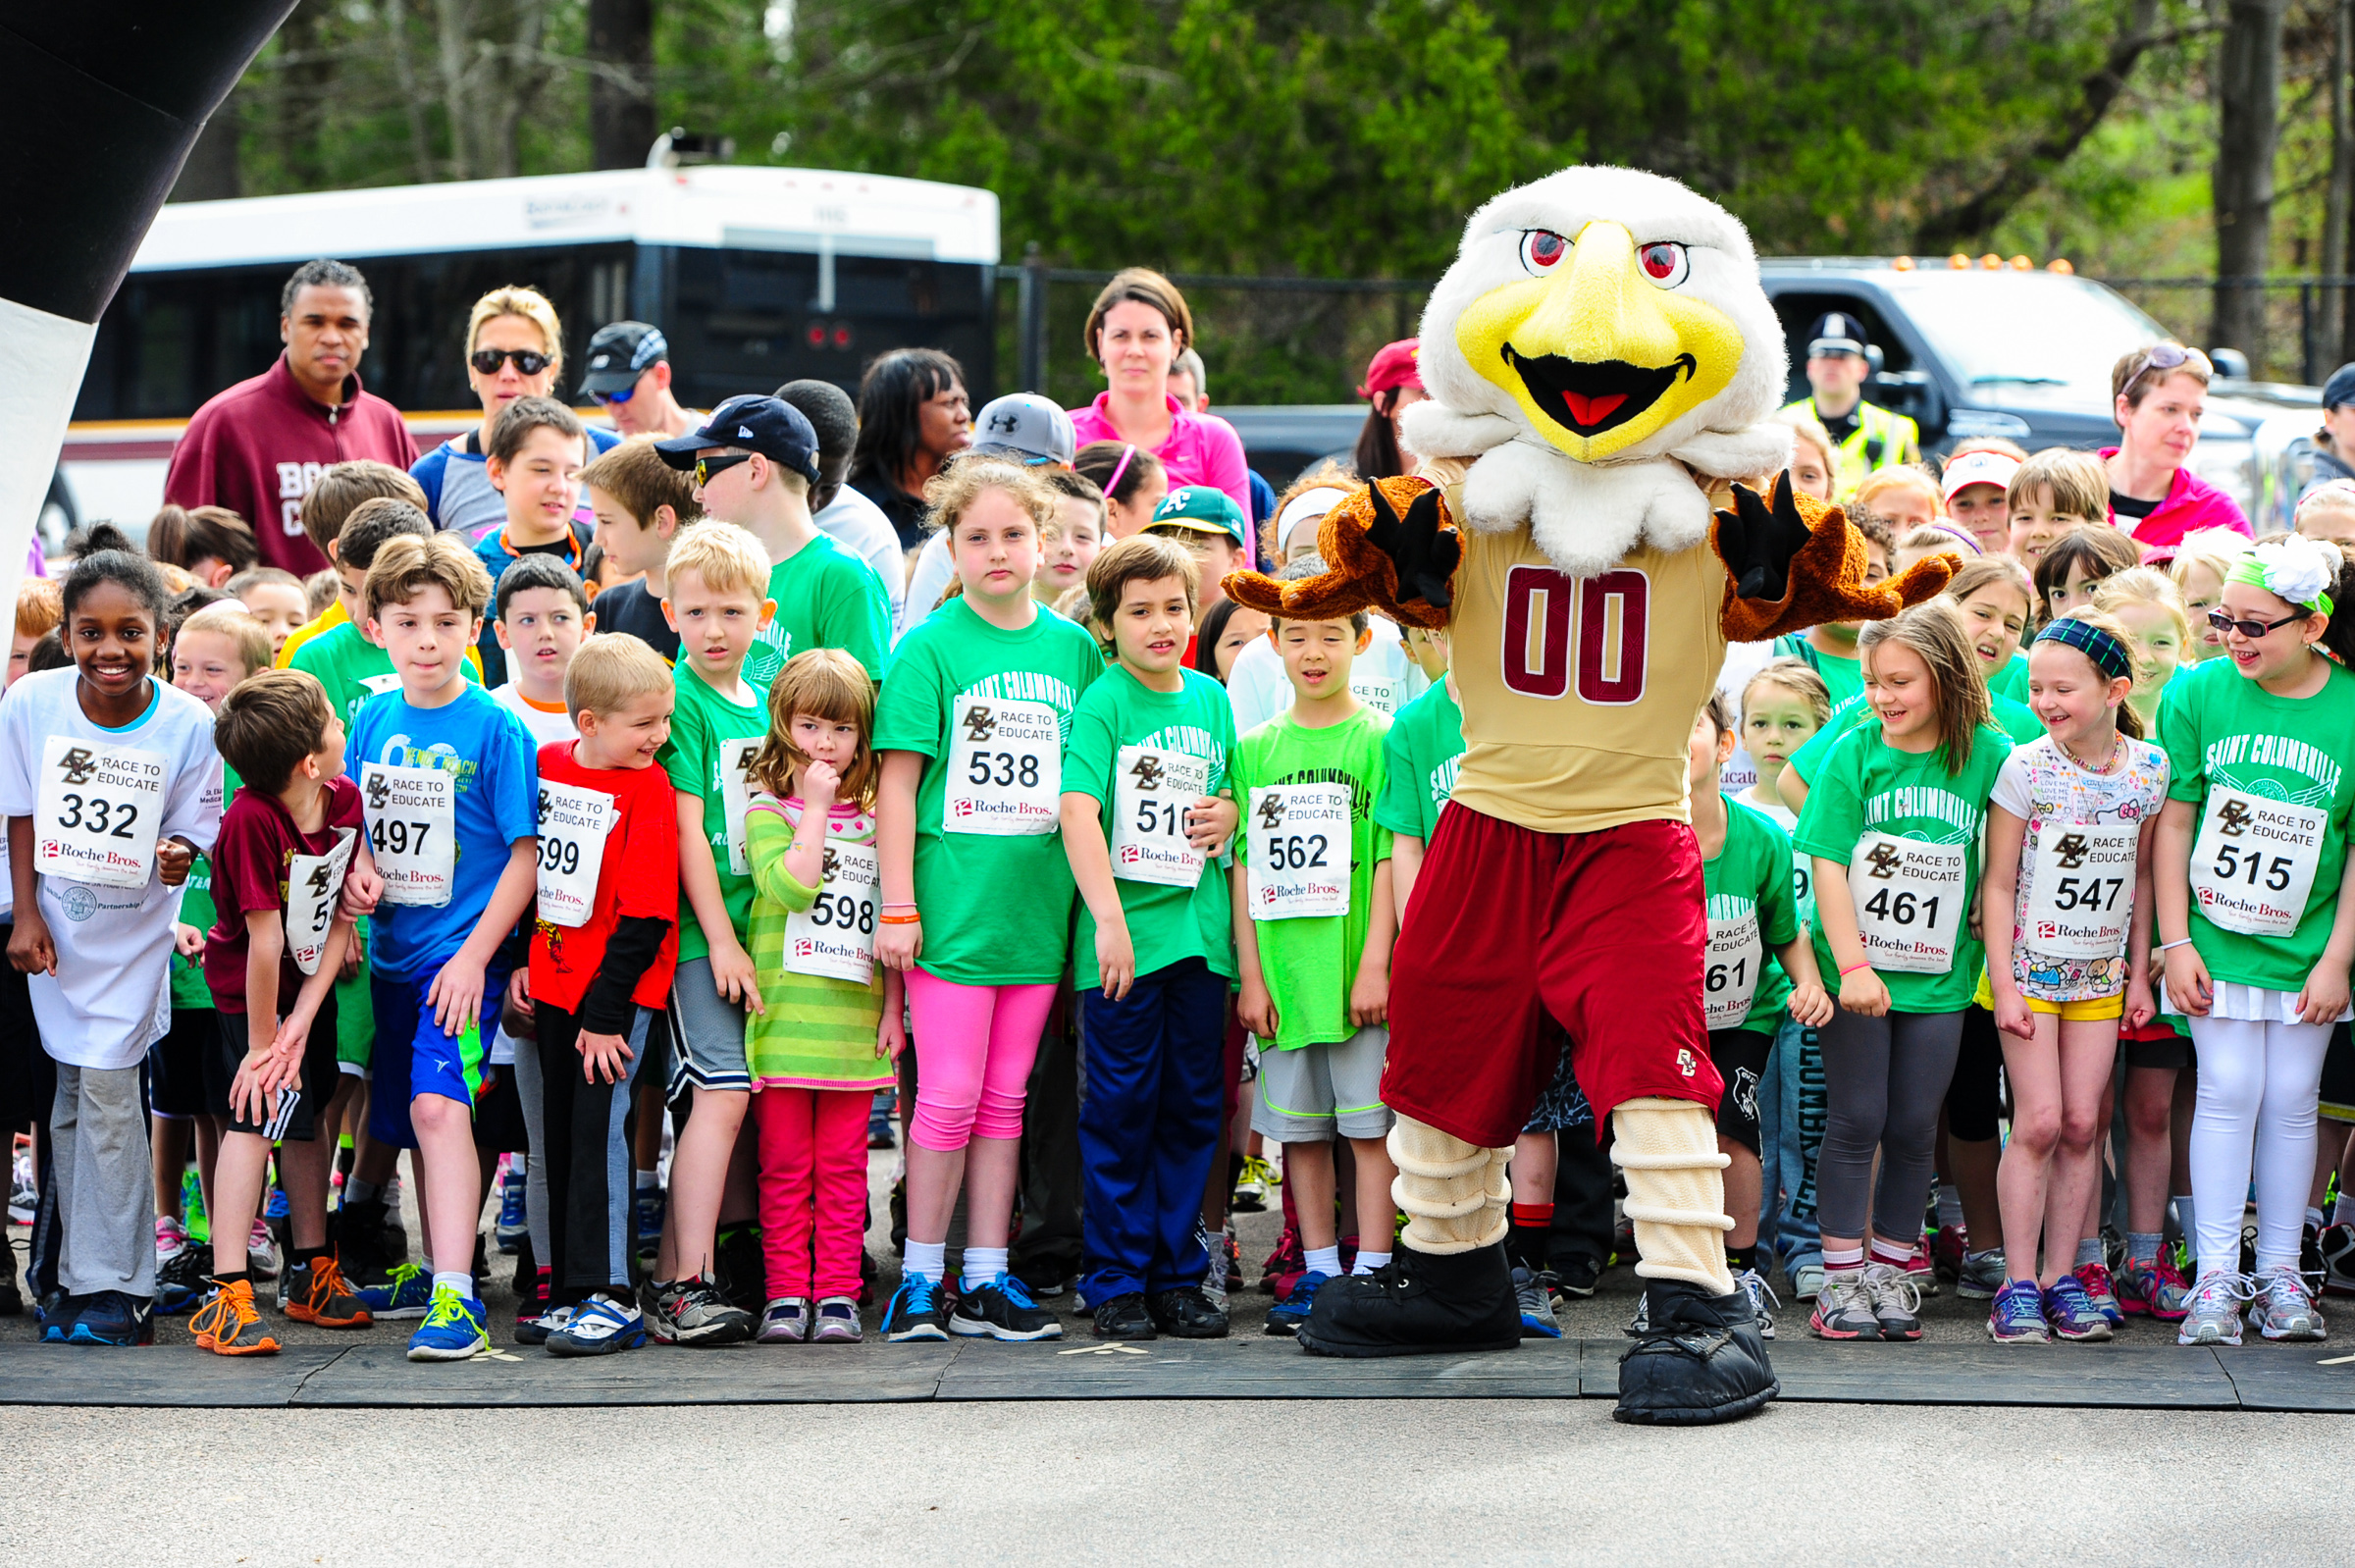 PHOTOS: BC Race to Educate 2014